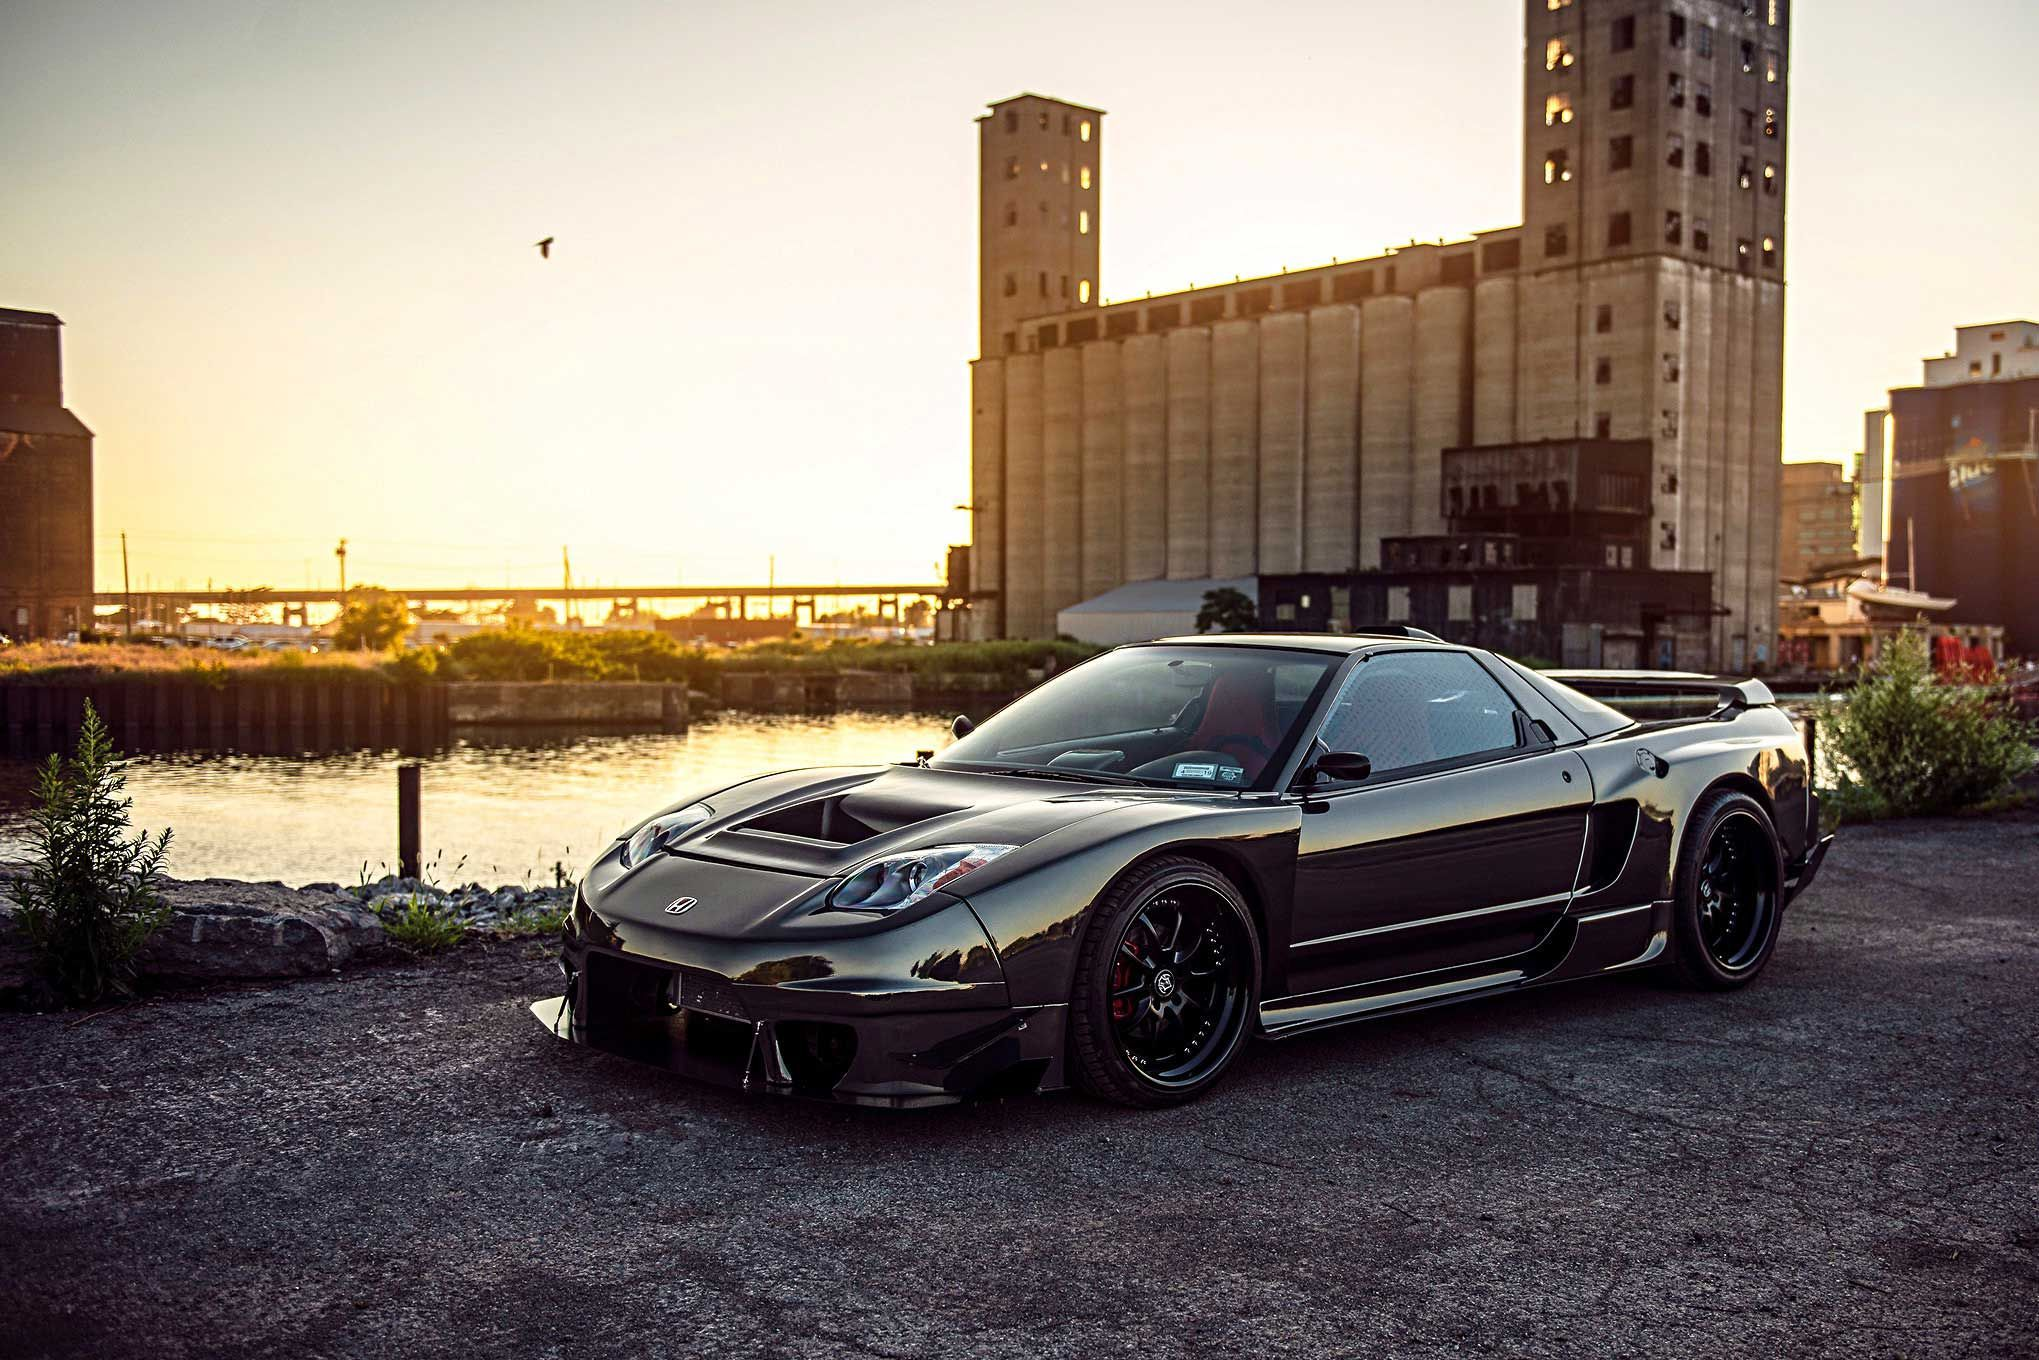 1992 Acura Nsx Modified And Sports Cars Pakwheels Forums Fuse Box 42039x1360 374 Kb